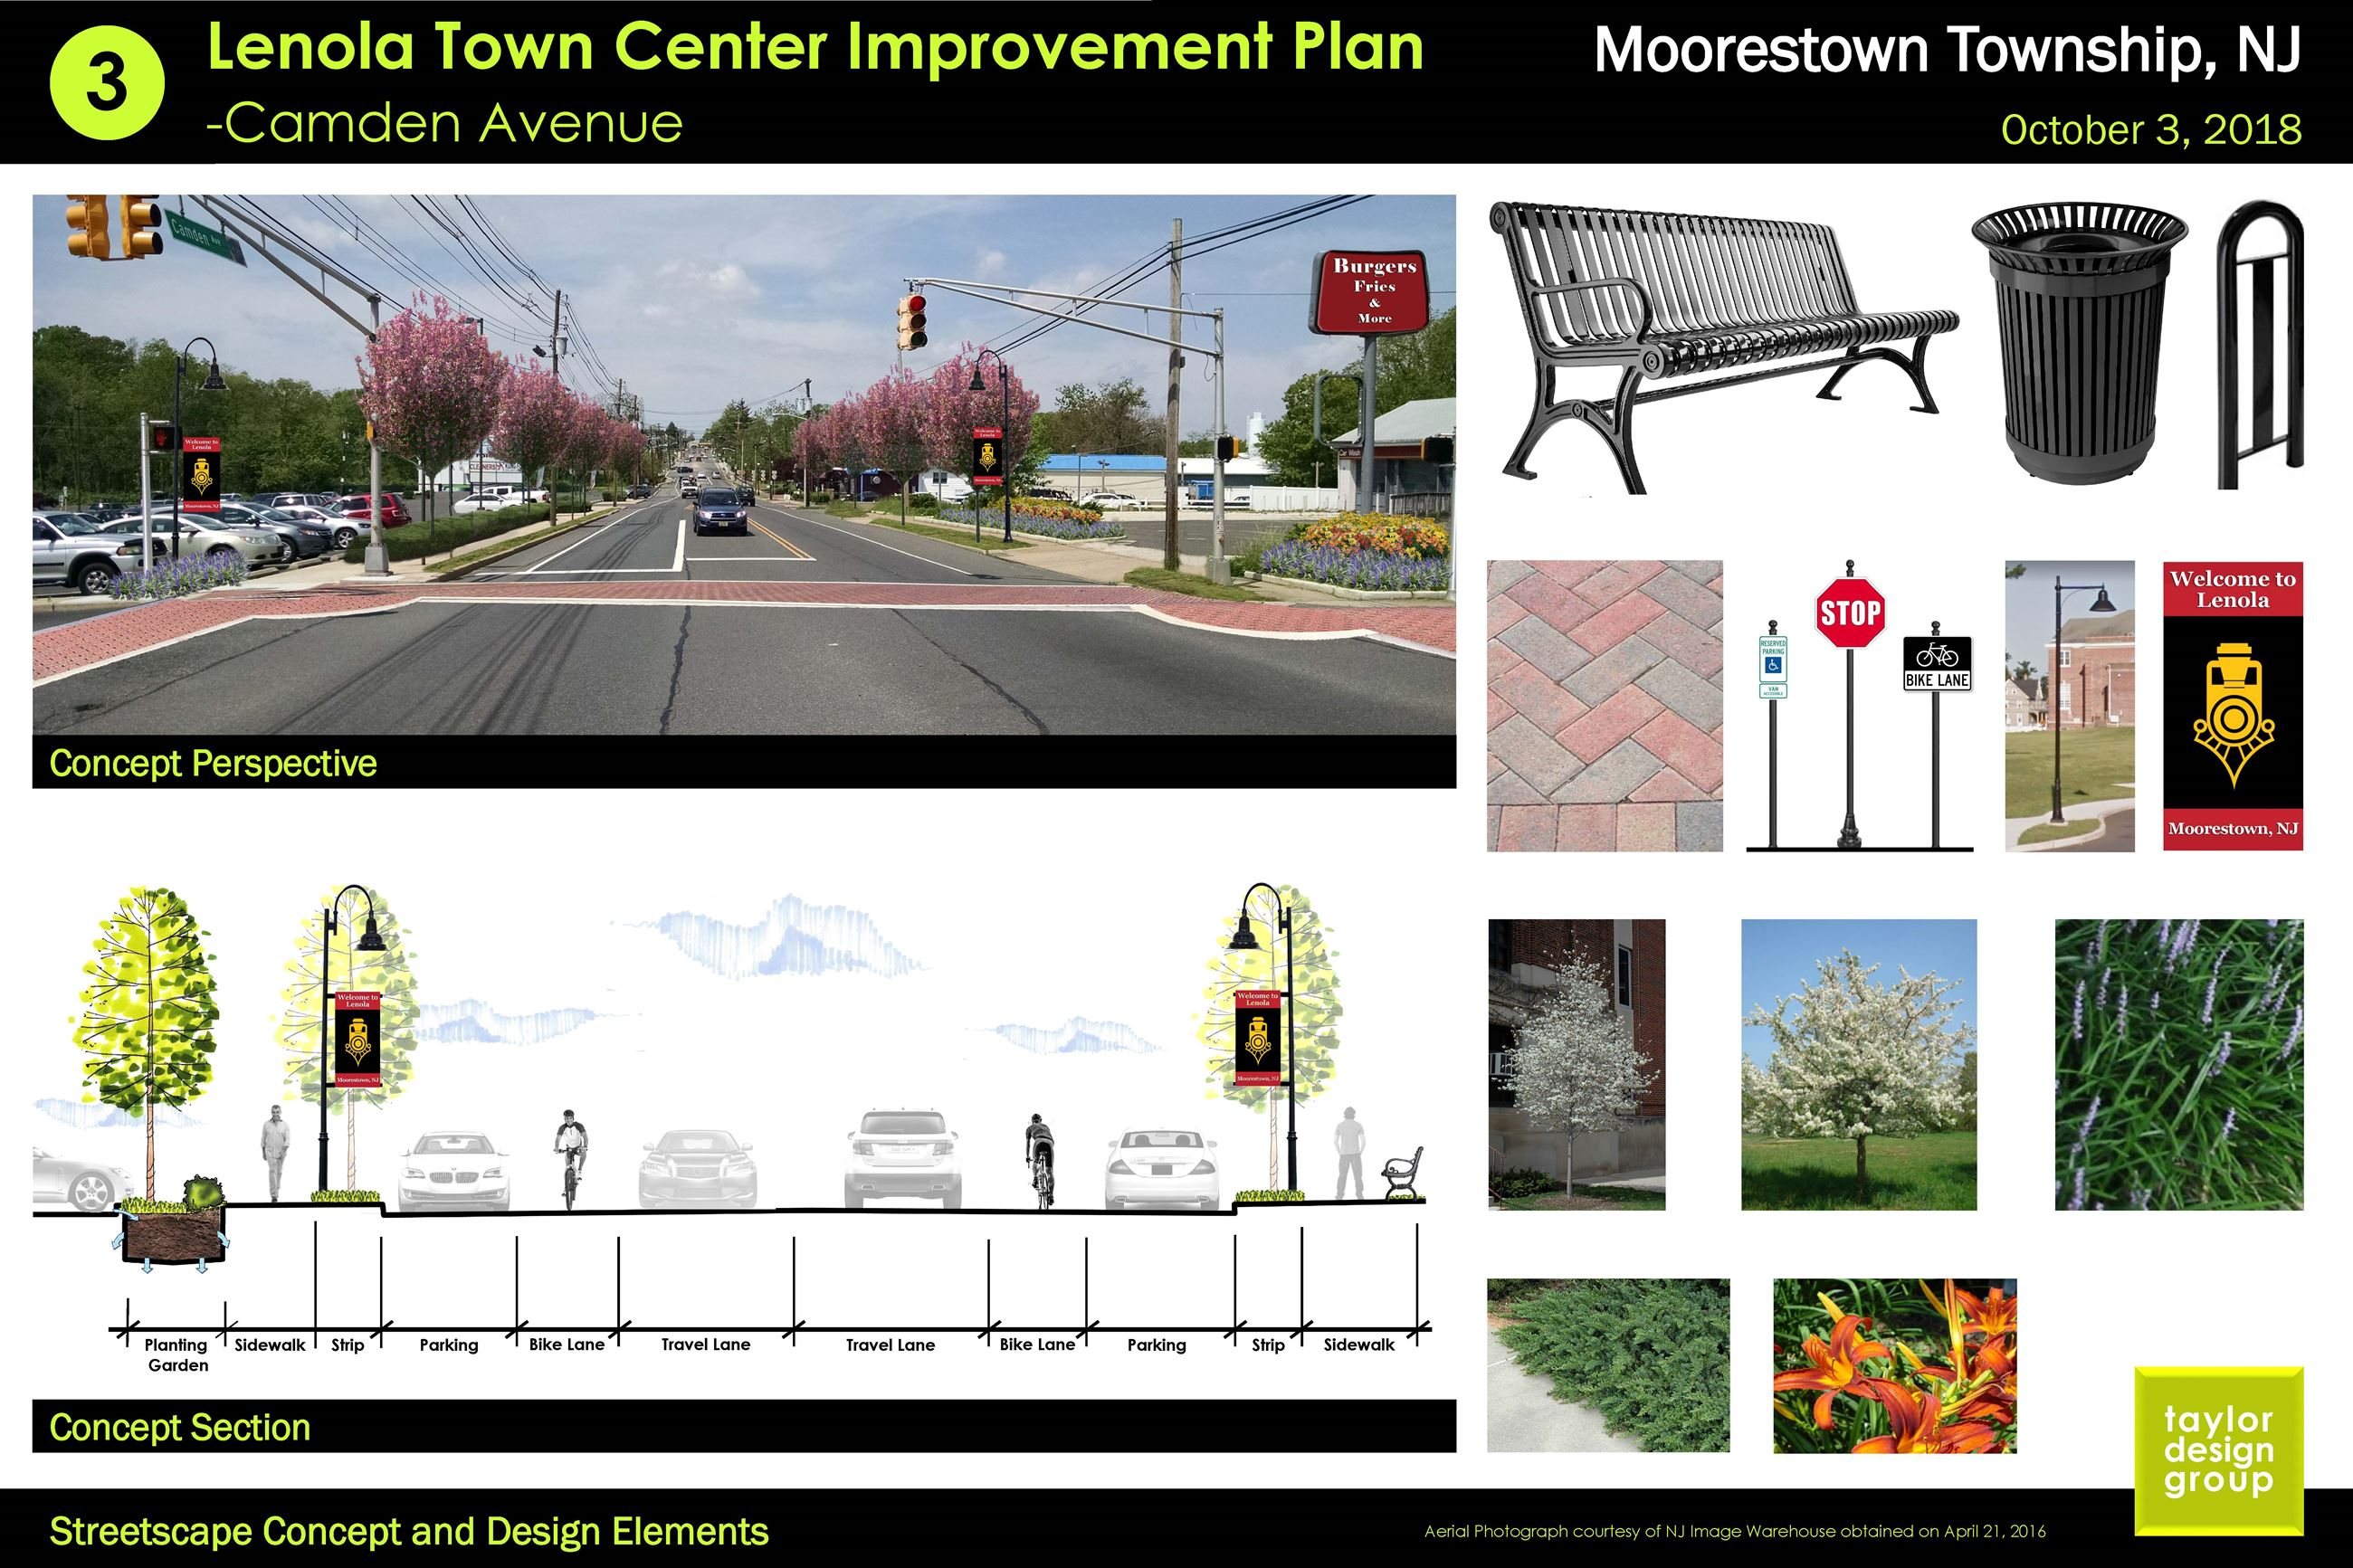 3 Cross- Section View and Design Elements of the Concept Plan for the Lenola Town Center Improvement